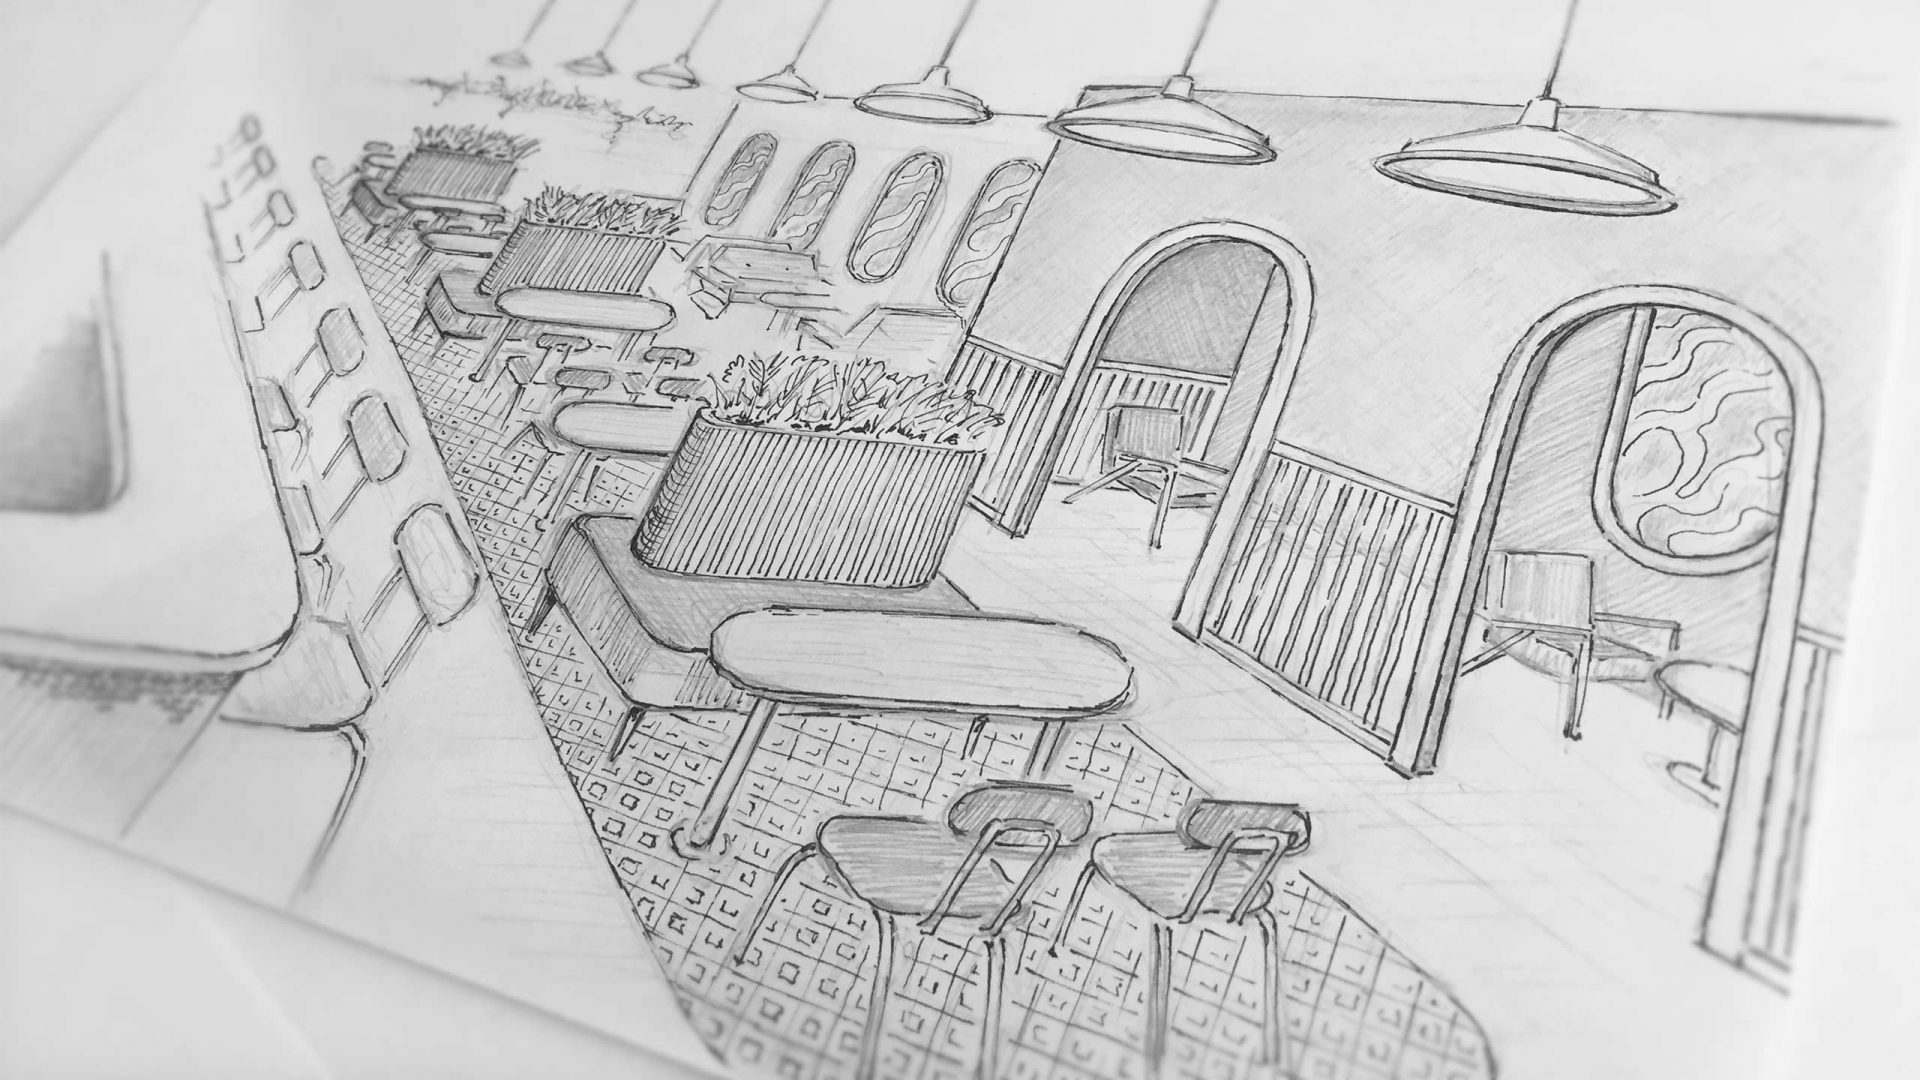 Brew92 Coffee Shop, Mecca by Liqui. Sketch of the basement level.